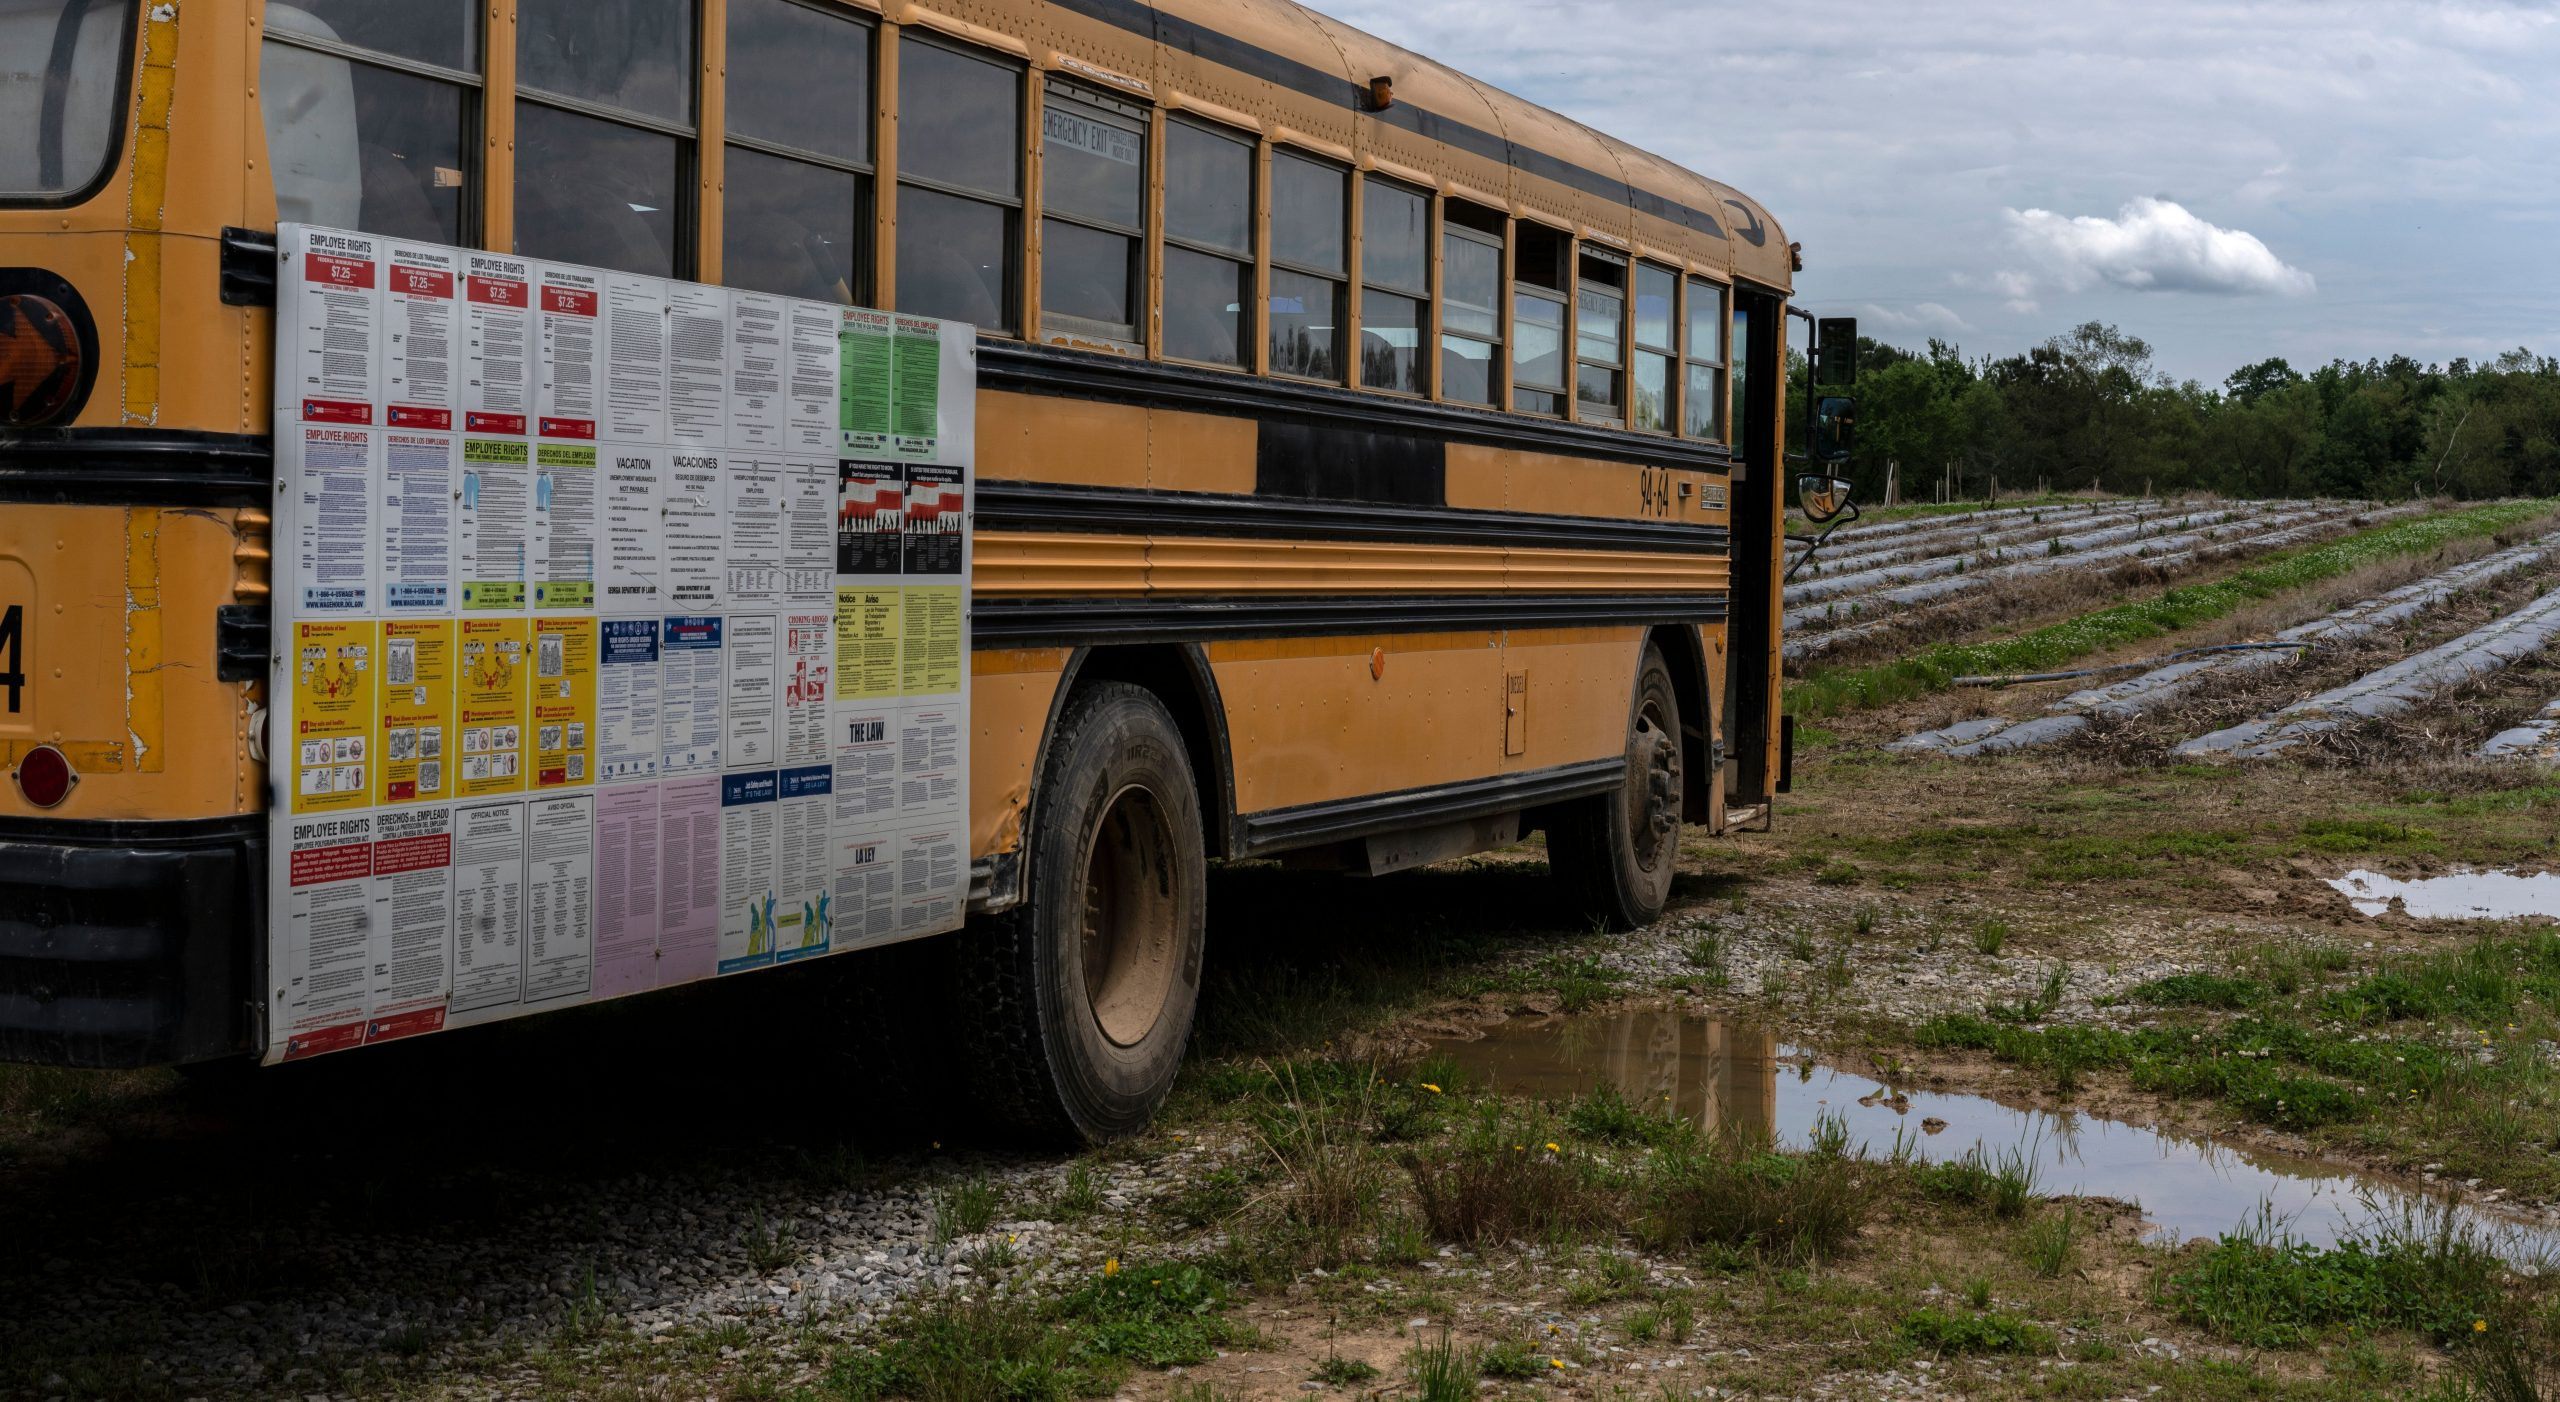 School bus presumably used to transport workers to and from fields. (Photo: John Partipilo)